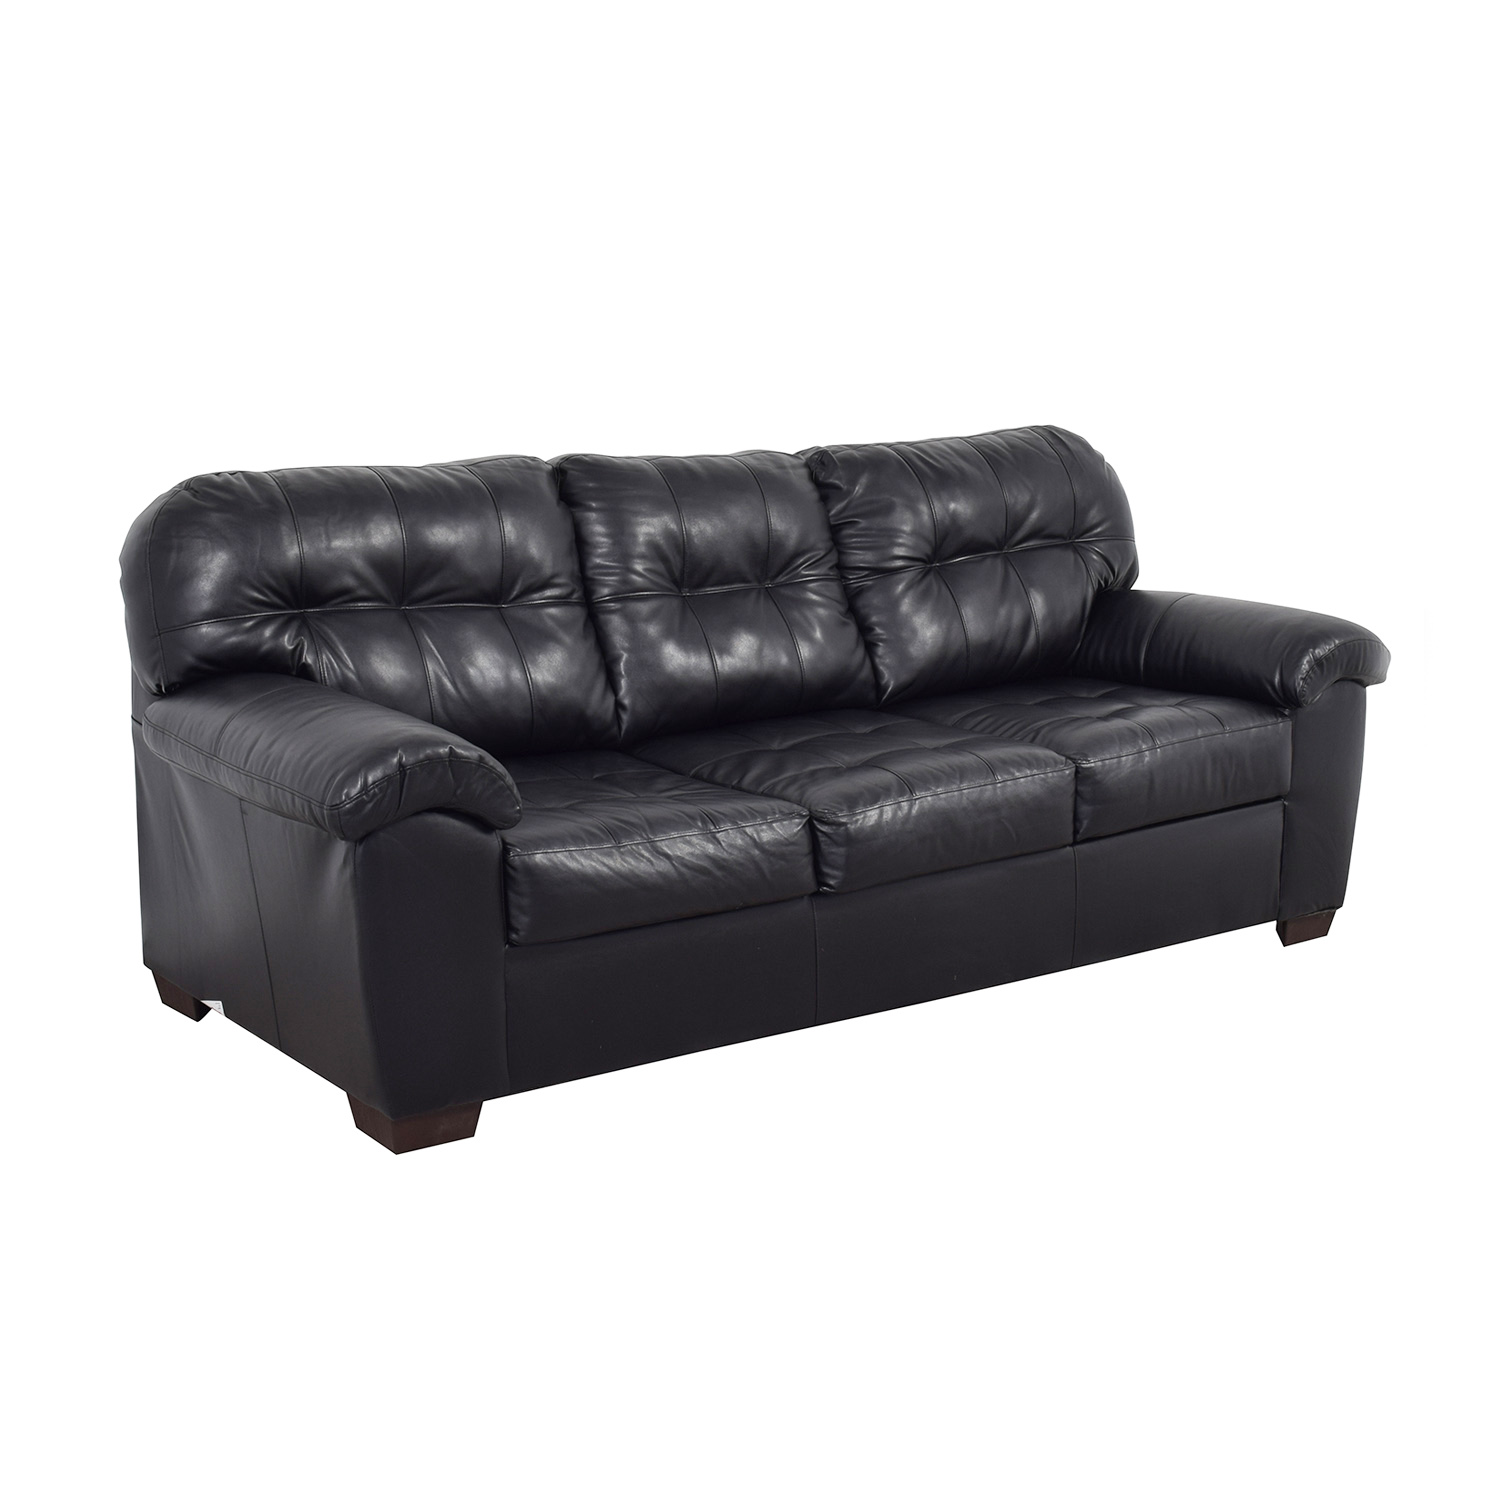 Black Tufted Leather Three-Cushion Couch sale